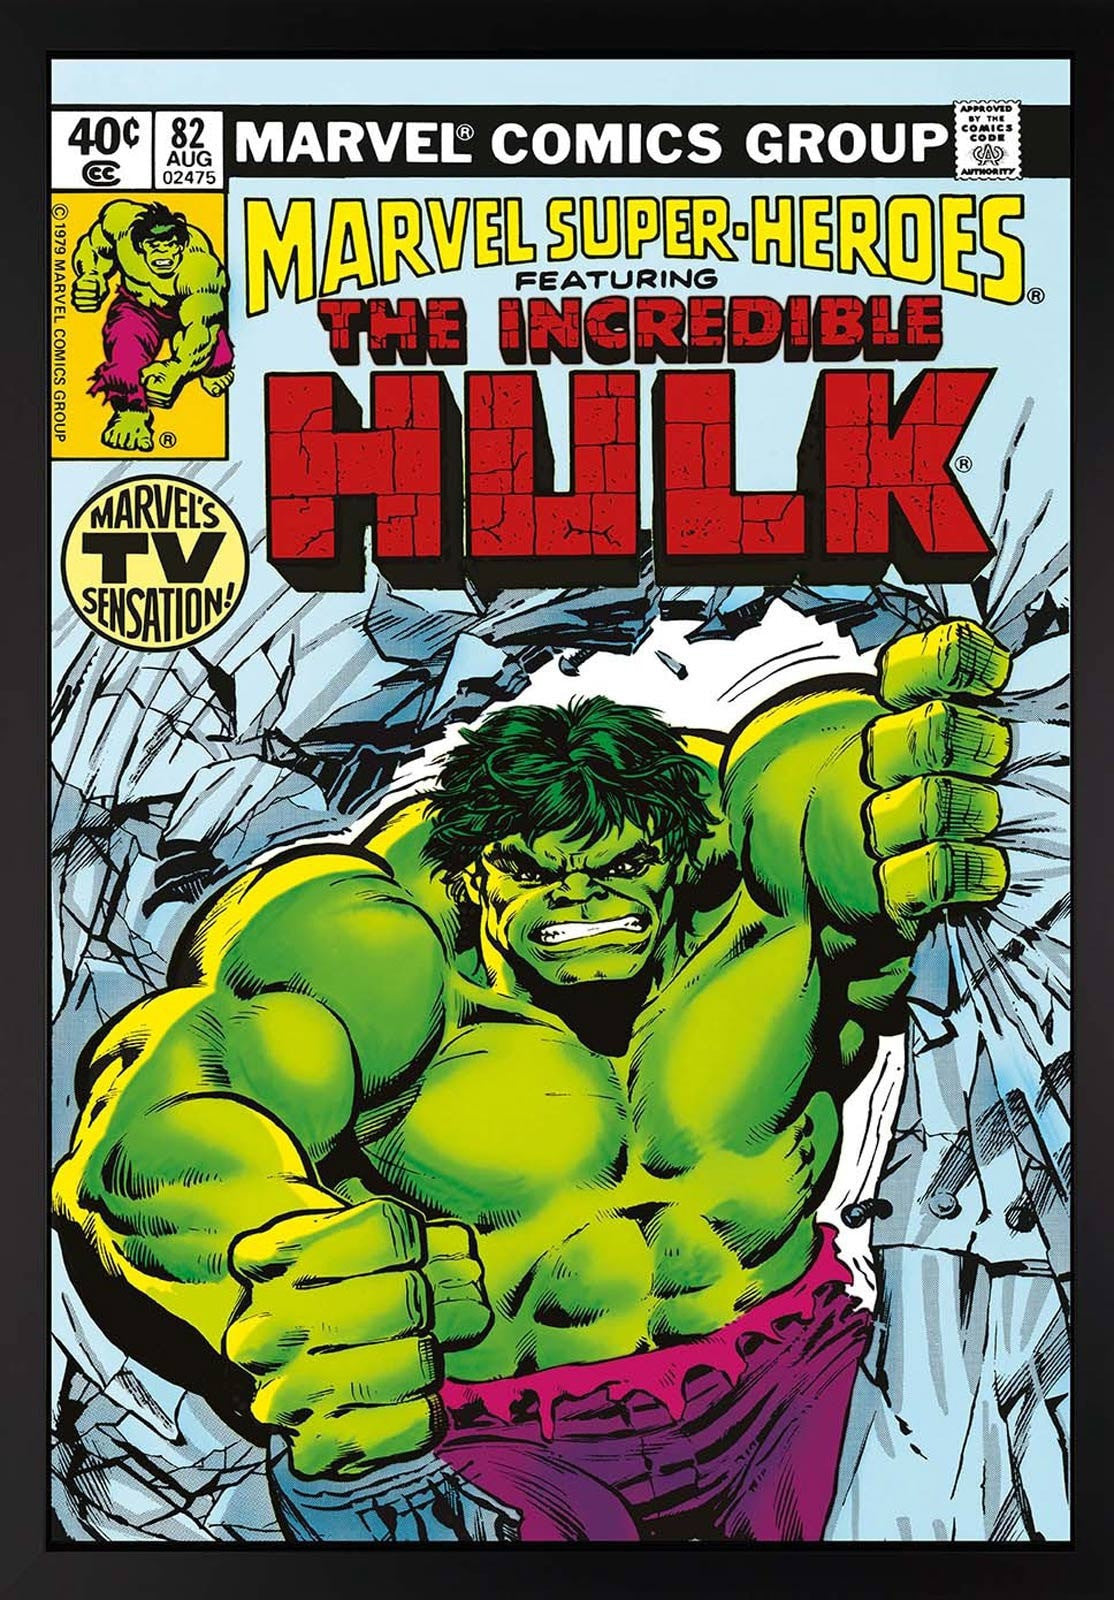 The Incredible Hulk #82 - Marvel's TV Sensation Stan Lee